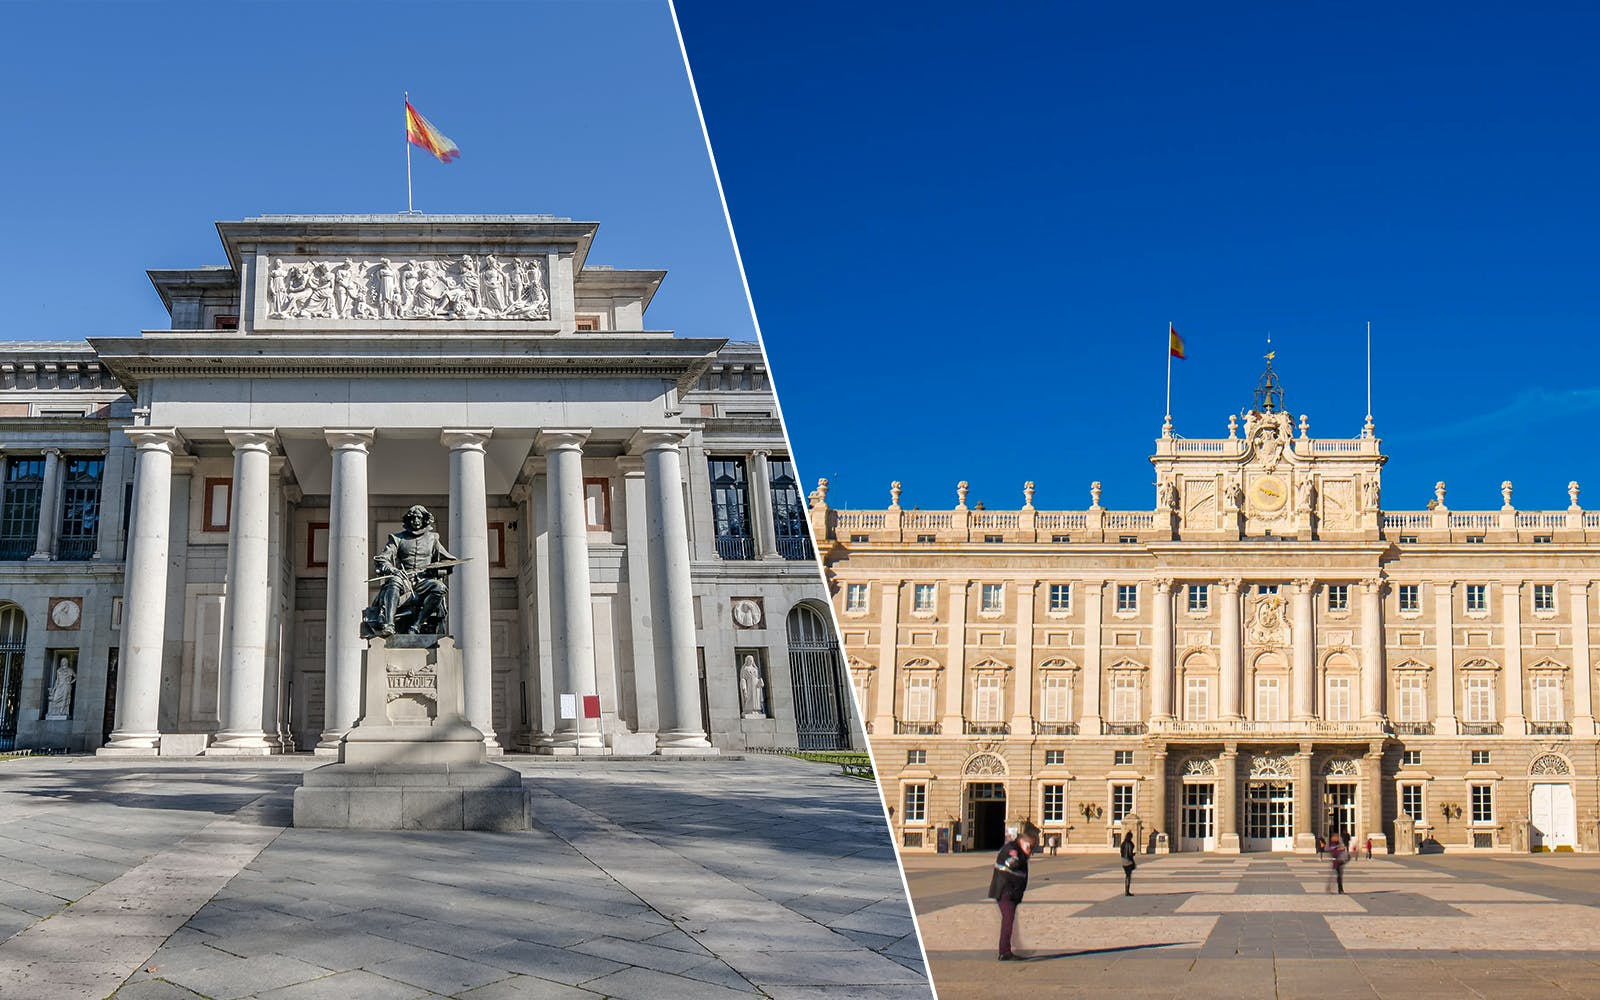 skip the line access to prado museum and the royal palace of madrid-1